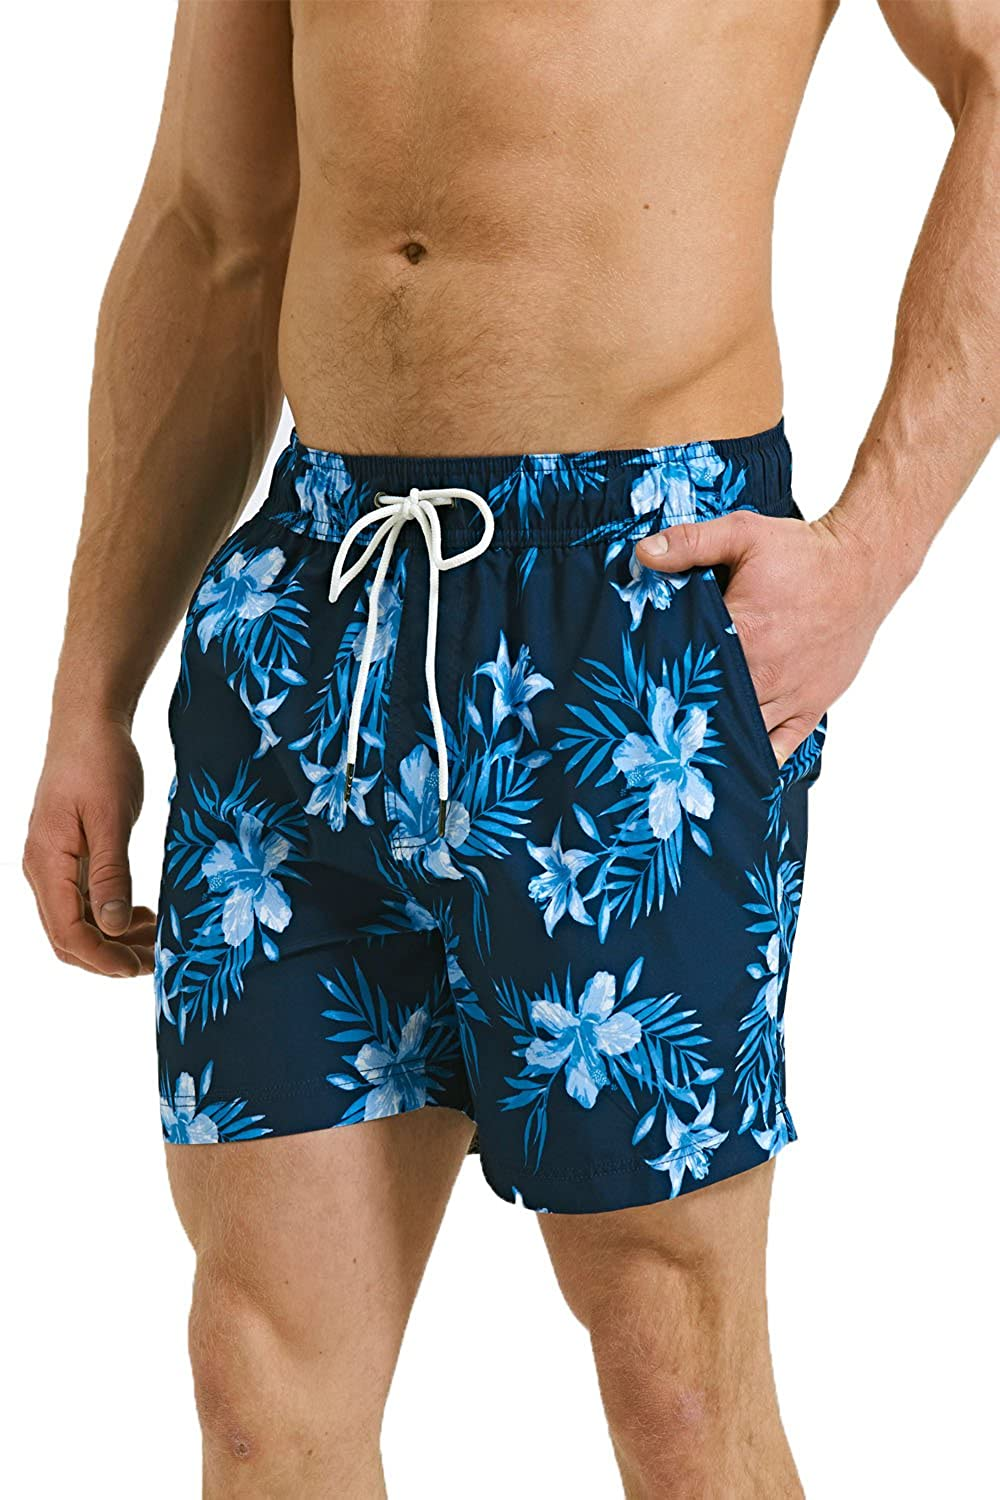 c583e05a22 Threadbare Mens Mesh Lined Swim Shorts Boys Summer Fully Beach Surf Board  Trunks Visage